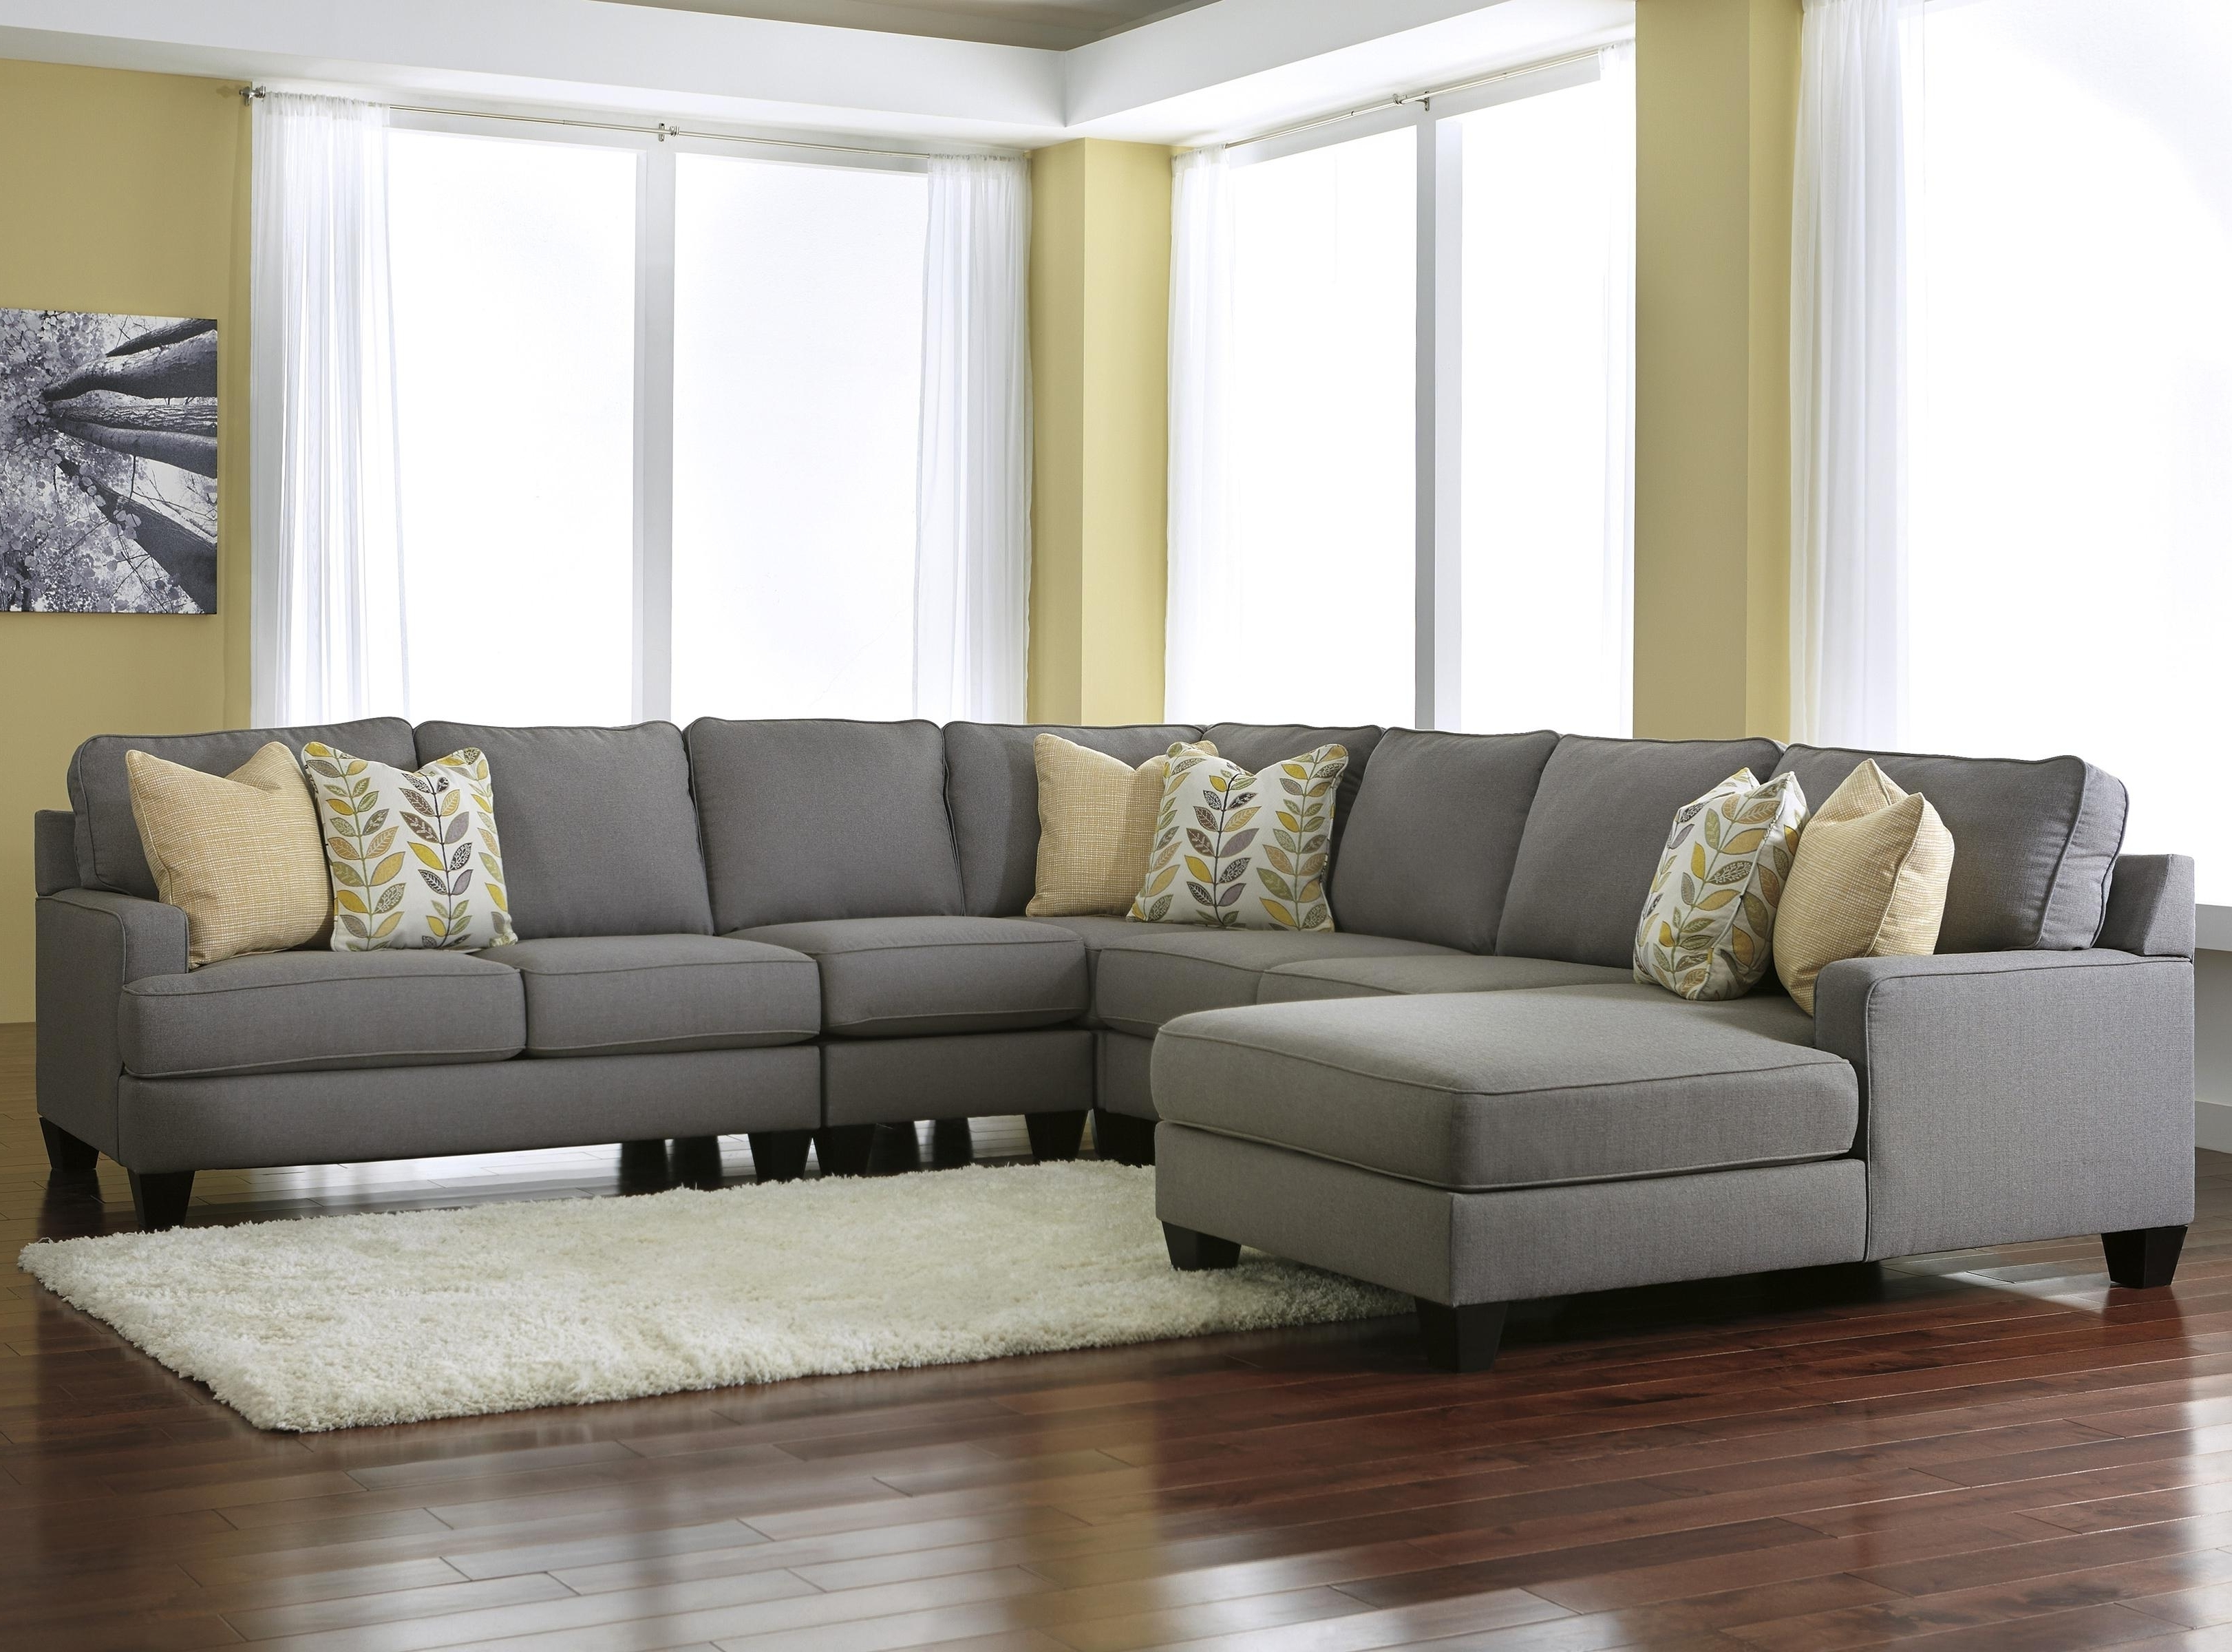 10 Best Ideas Duluth Mn Sectional Sofas | Sofa Ideas